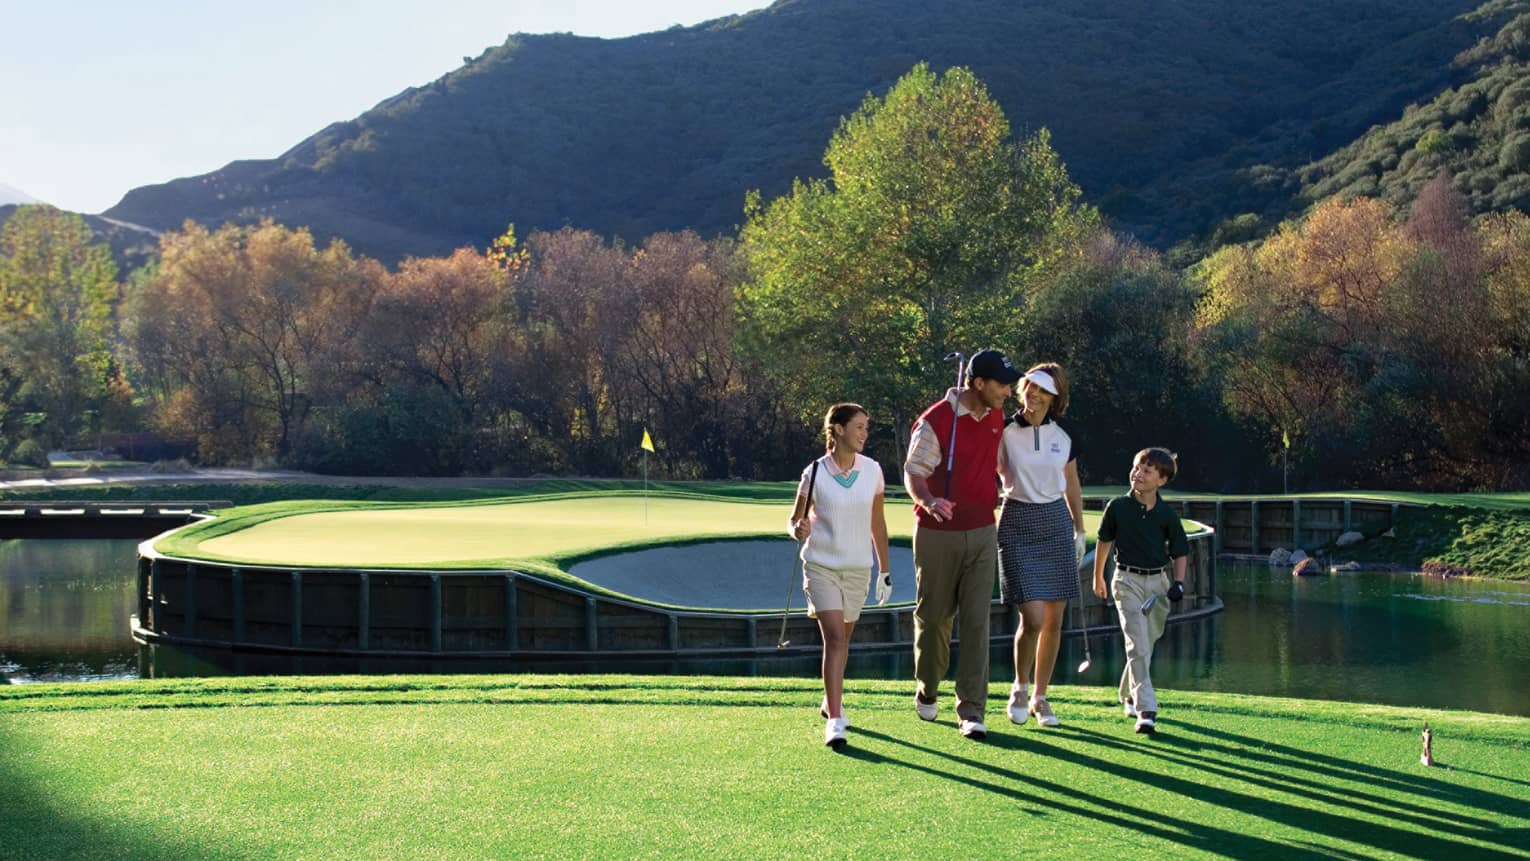 Family holds golf clubs, walks along sunny green on course near ponds, mountains